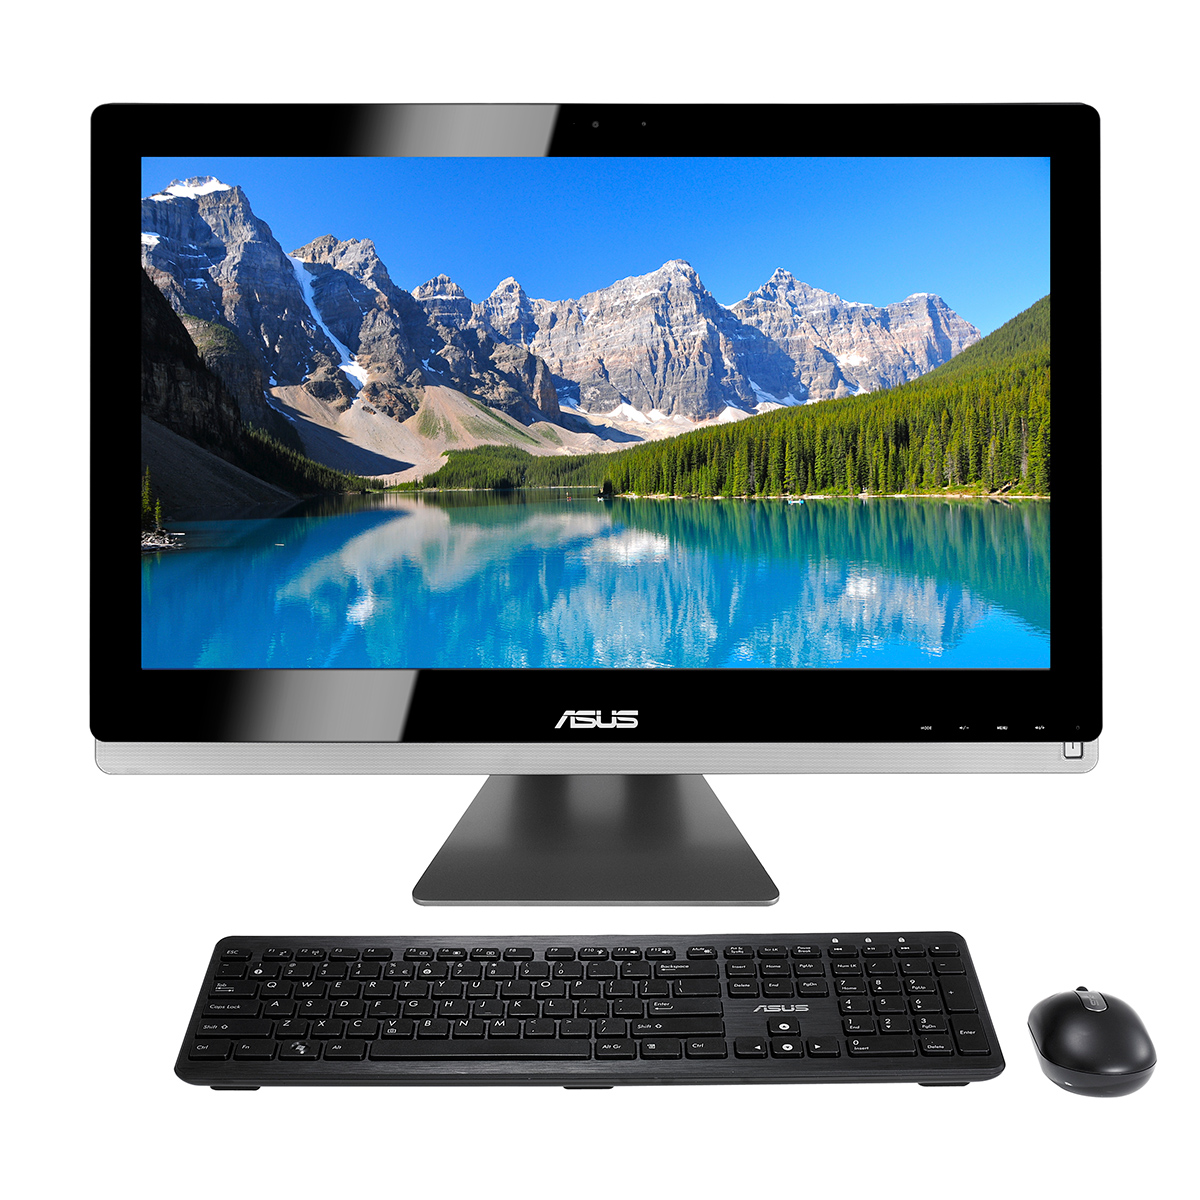 asus all in one pc et2702igth bh002k pc de bureau asus sur. Black Bedroom Furniture Sets. Home Design Ideas